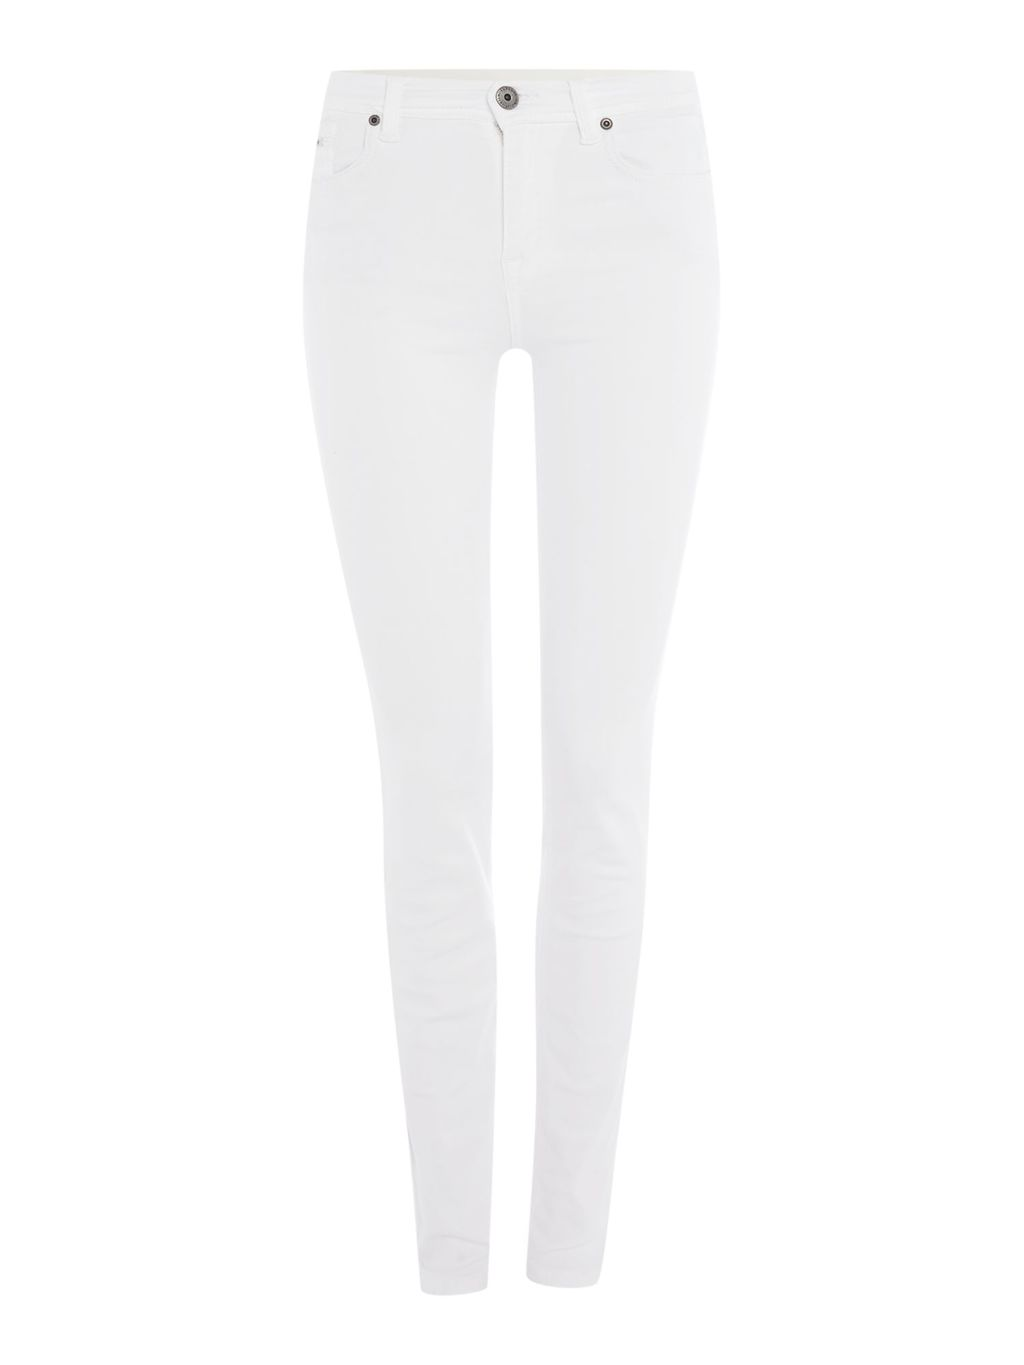 International Hairpin Skinny Jeans, White - style: skinny leg; length: standard; pattern: plain; pocket detail: traditional 5 pocket; waist: mid/regular rise; predominant colour: white; occasions: casual; fibres: cotton - stretch; texture group: denim; pattern type: fabric; season: a/w 2015; wardrobe: highlight